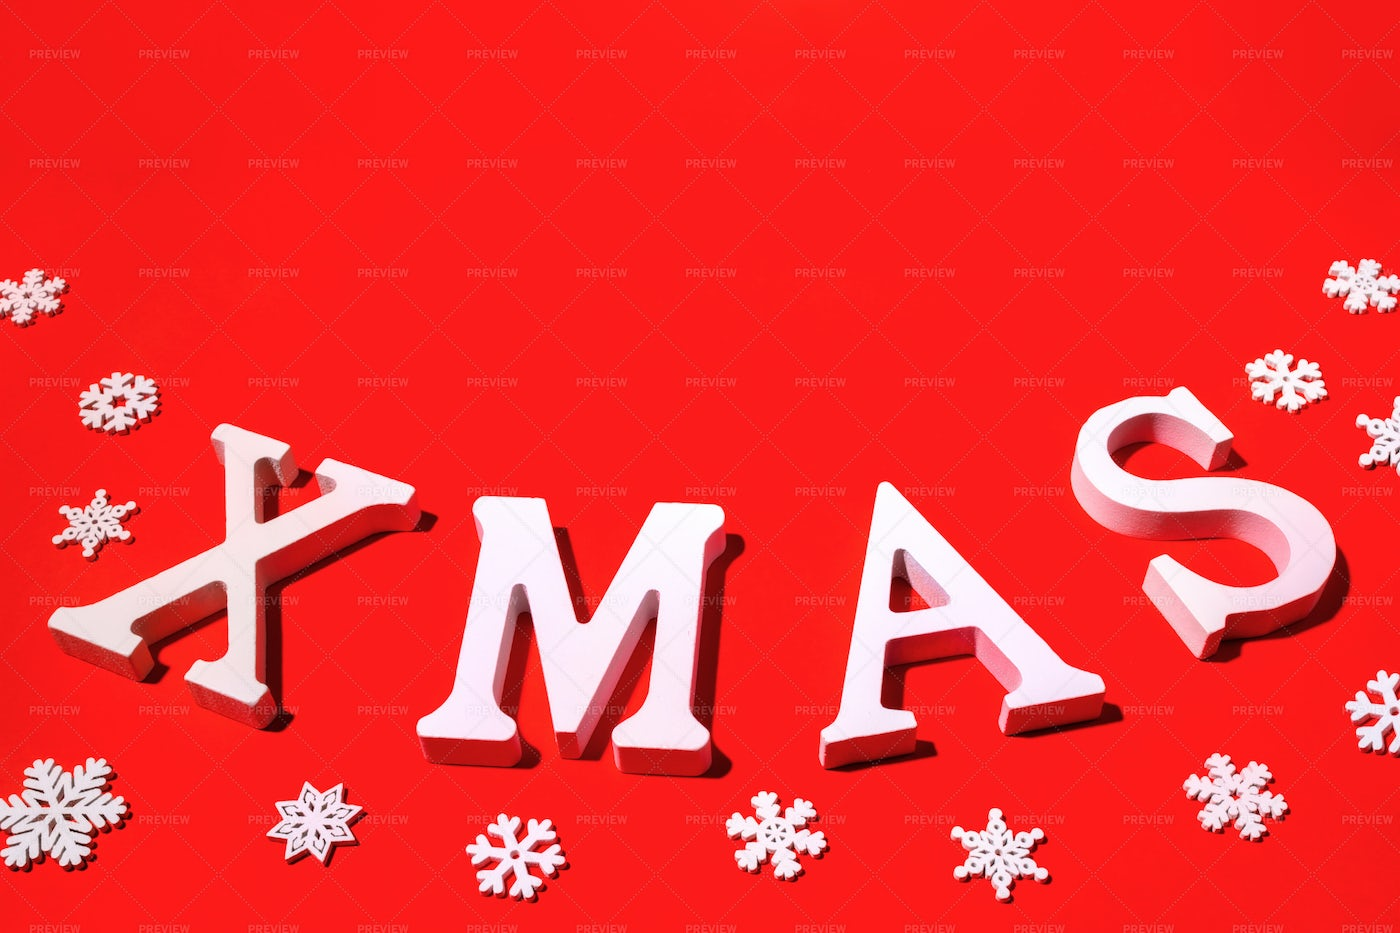 Christmas Red Backdrop With Word XMAS.: Stock Photos